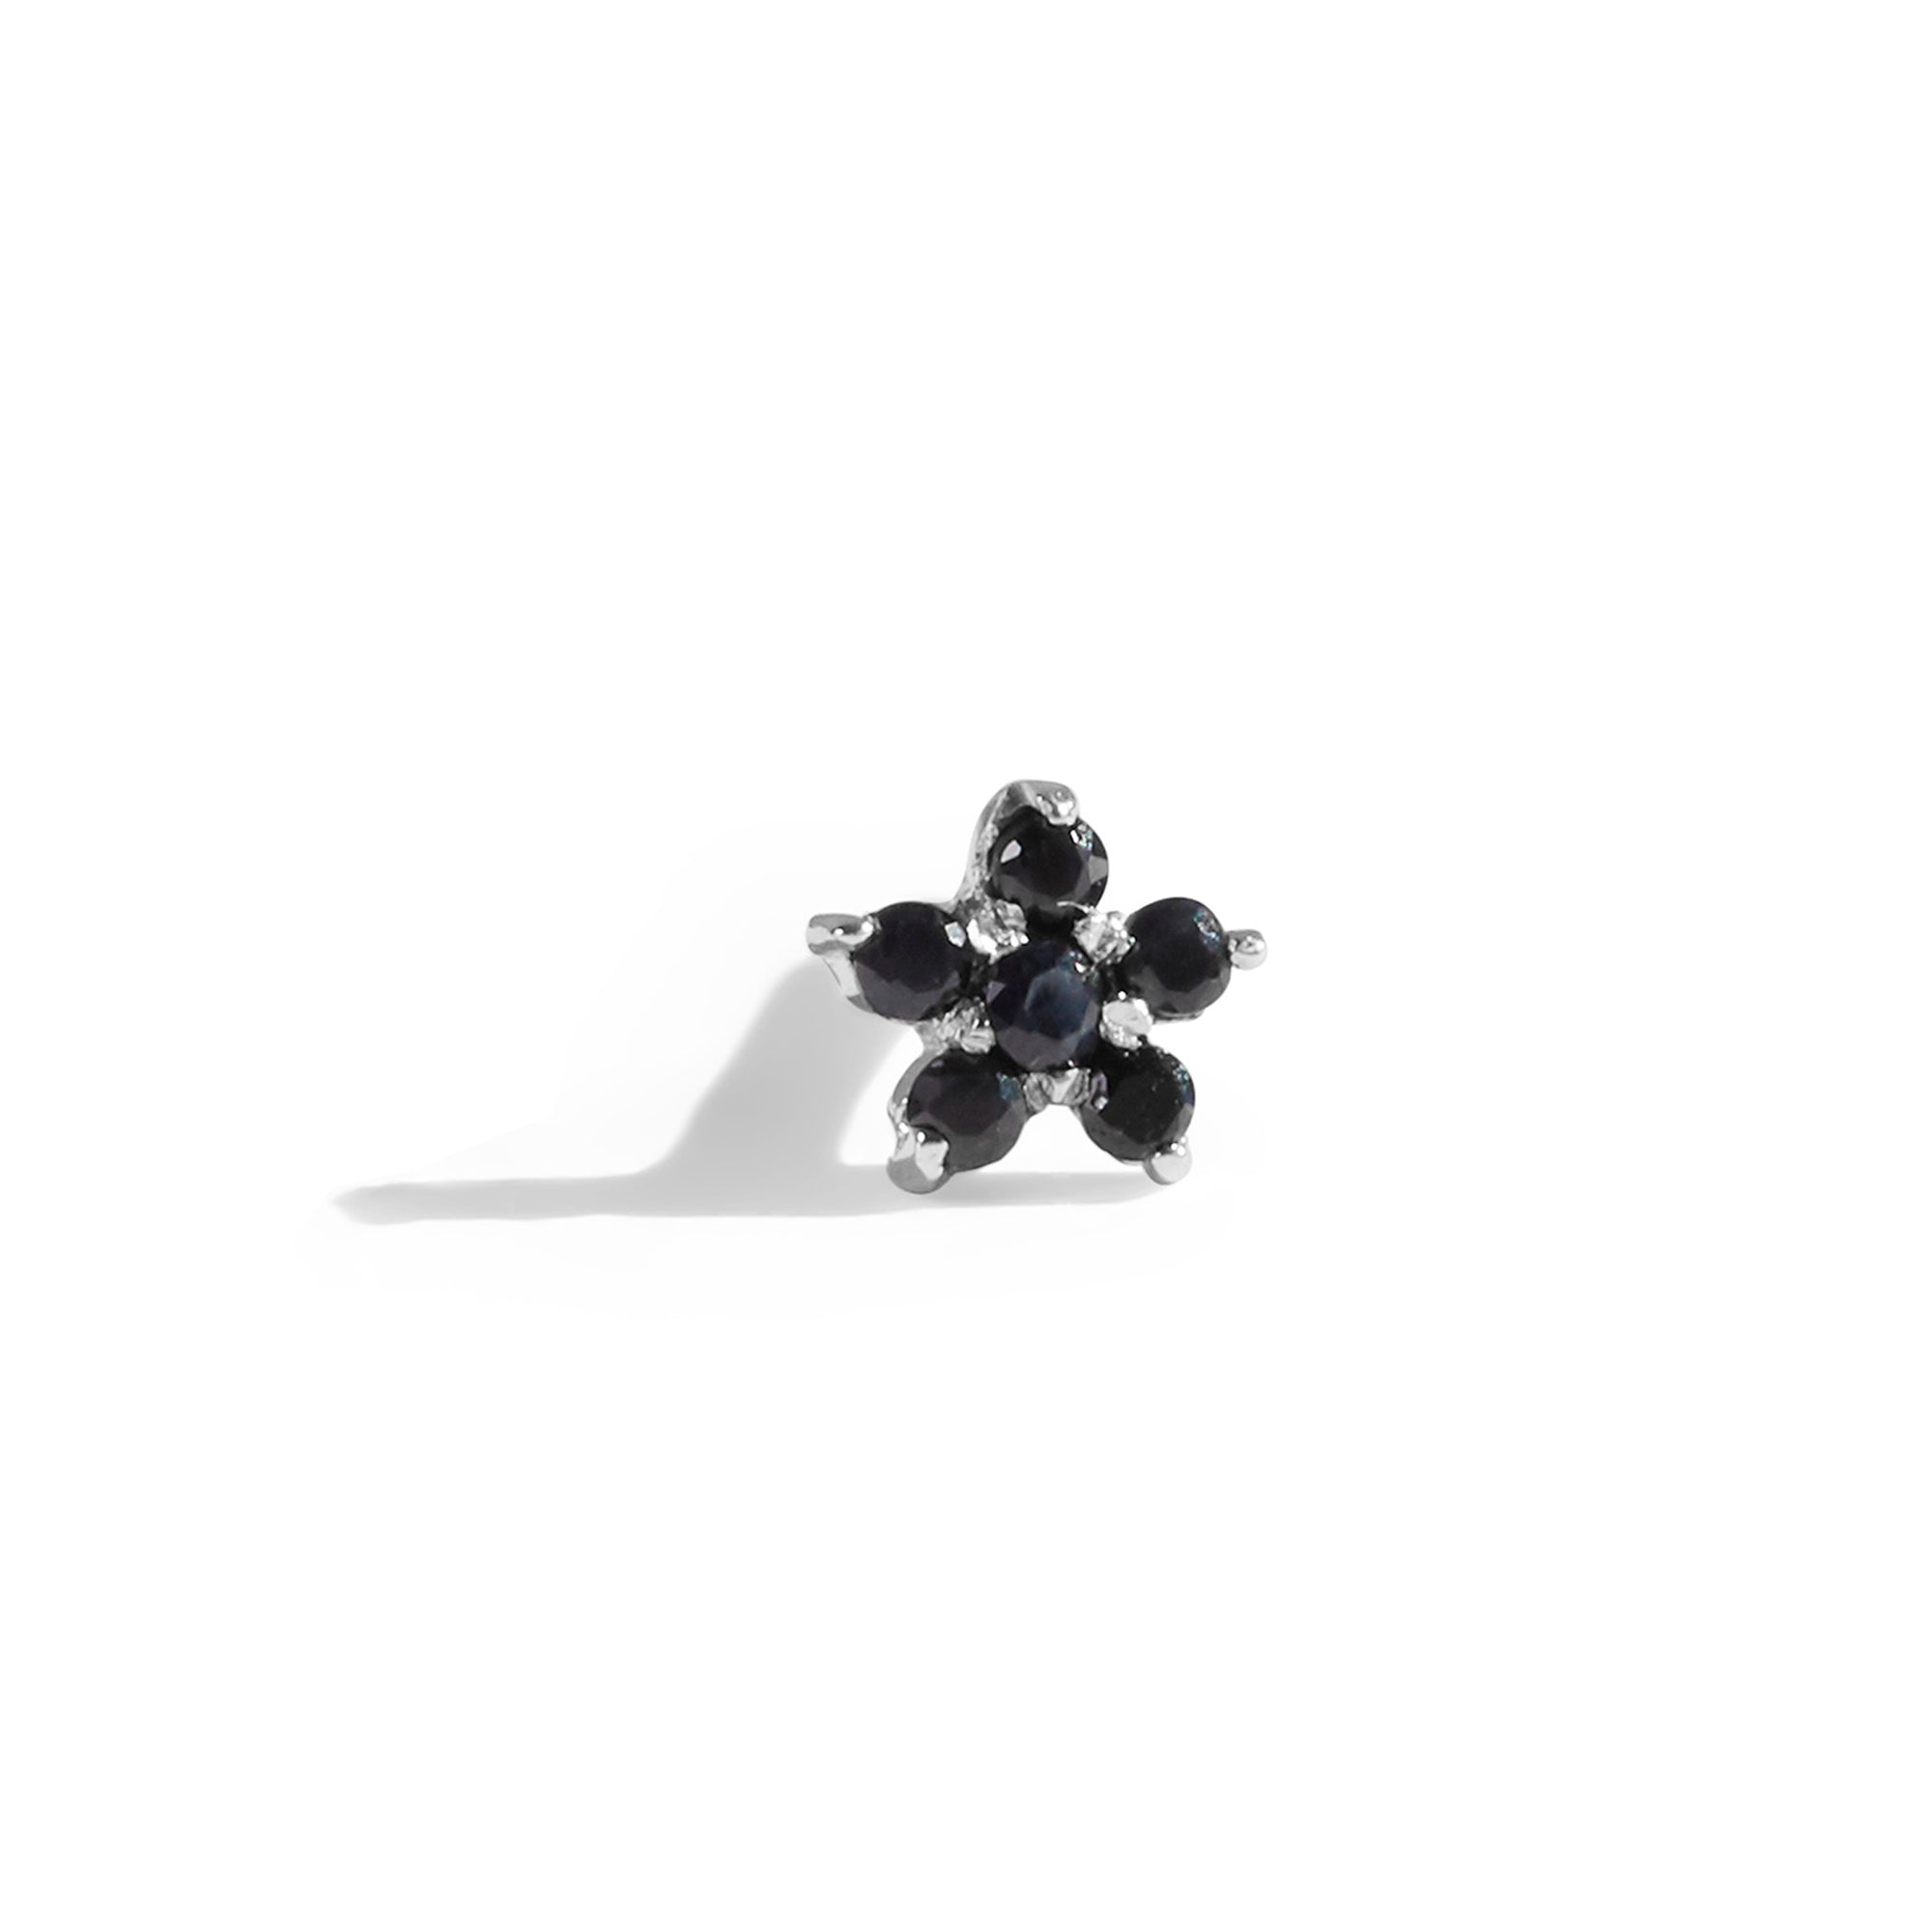 The Black Sapphire Flower Stud in Silver